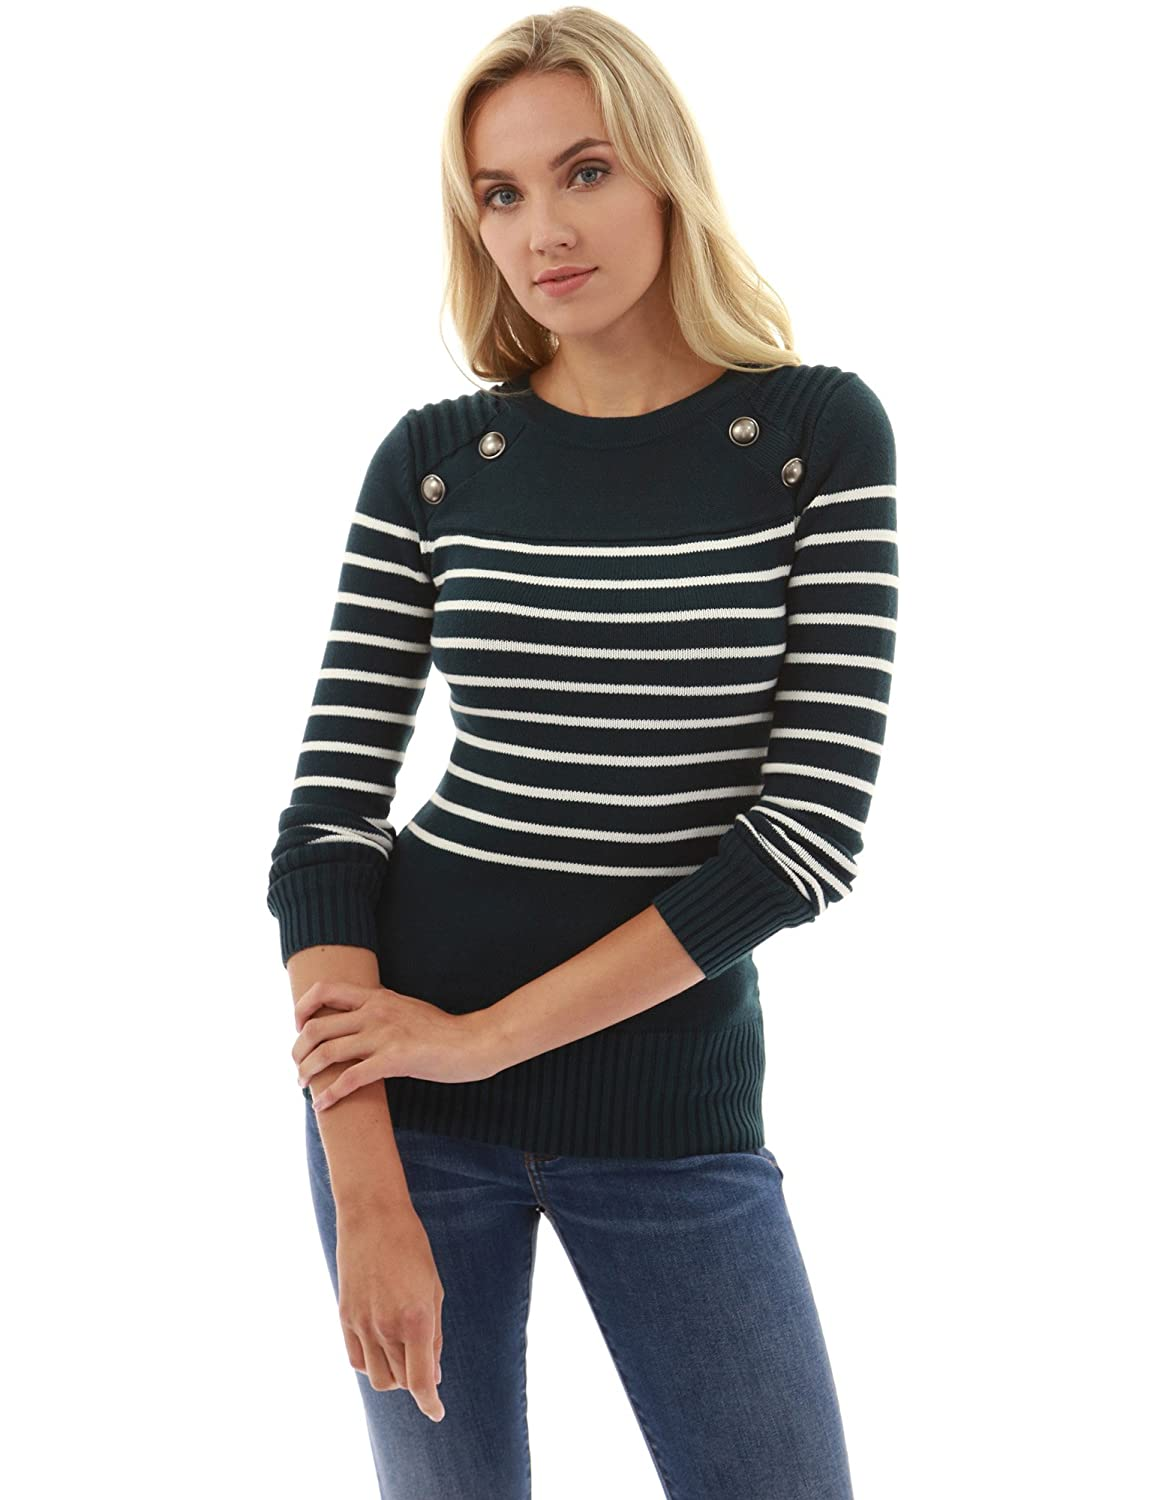 PattyBoutik Womens Crewneck Striped Military Sweater